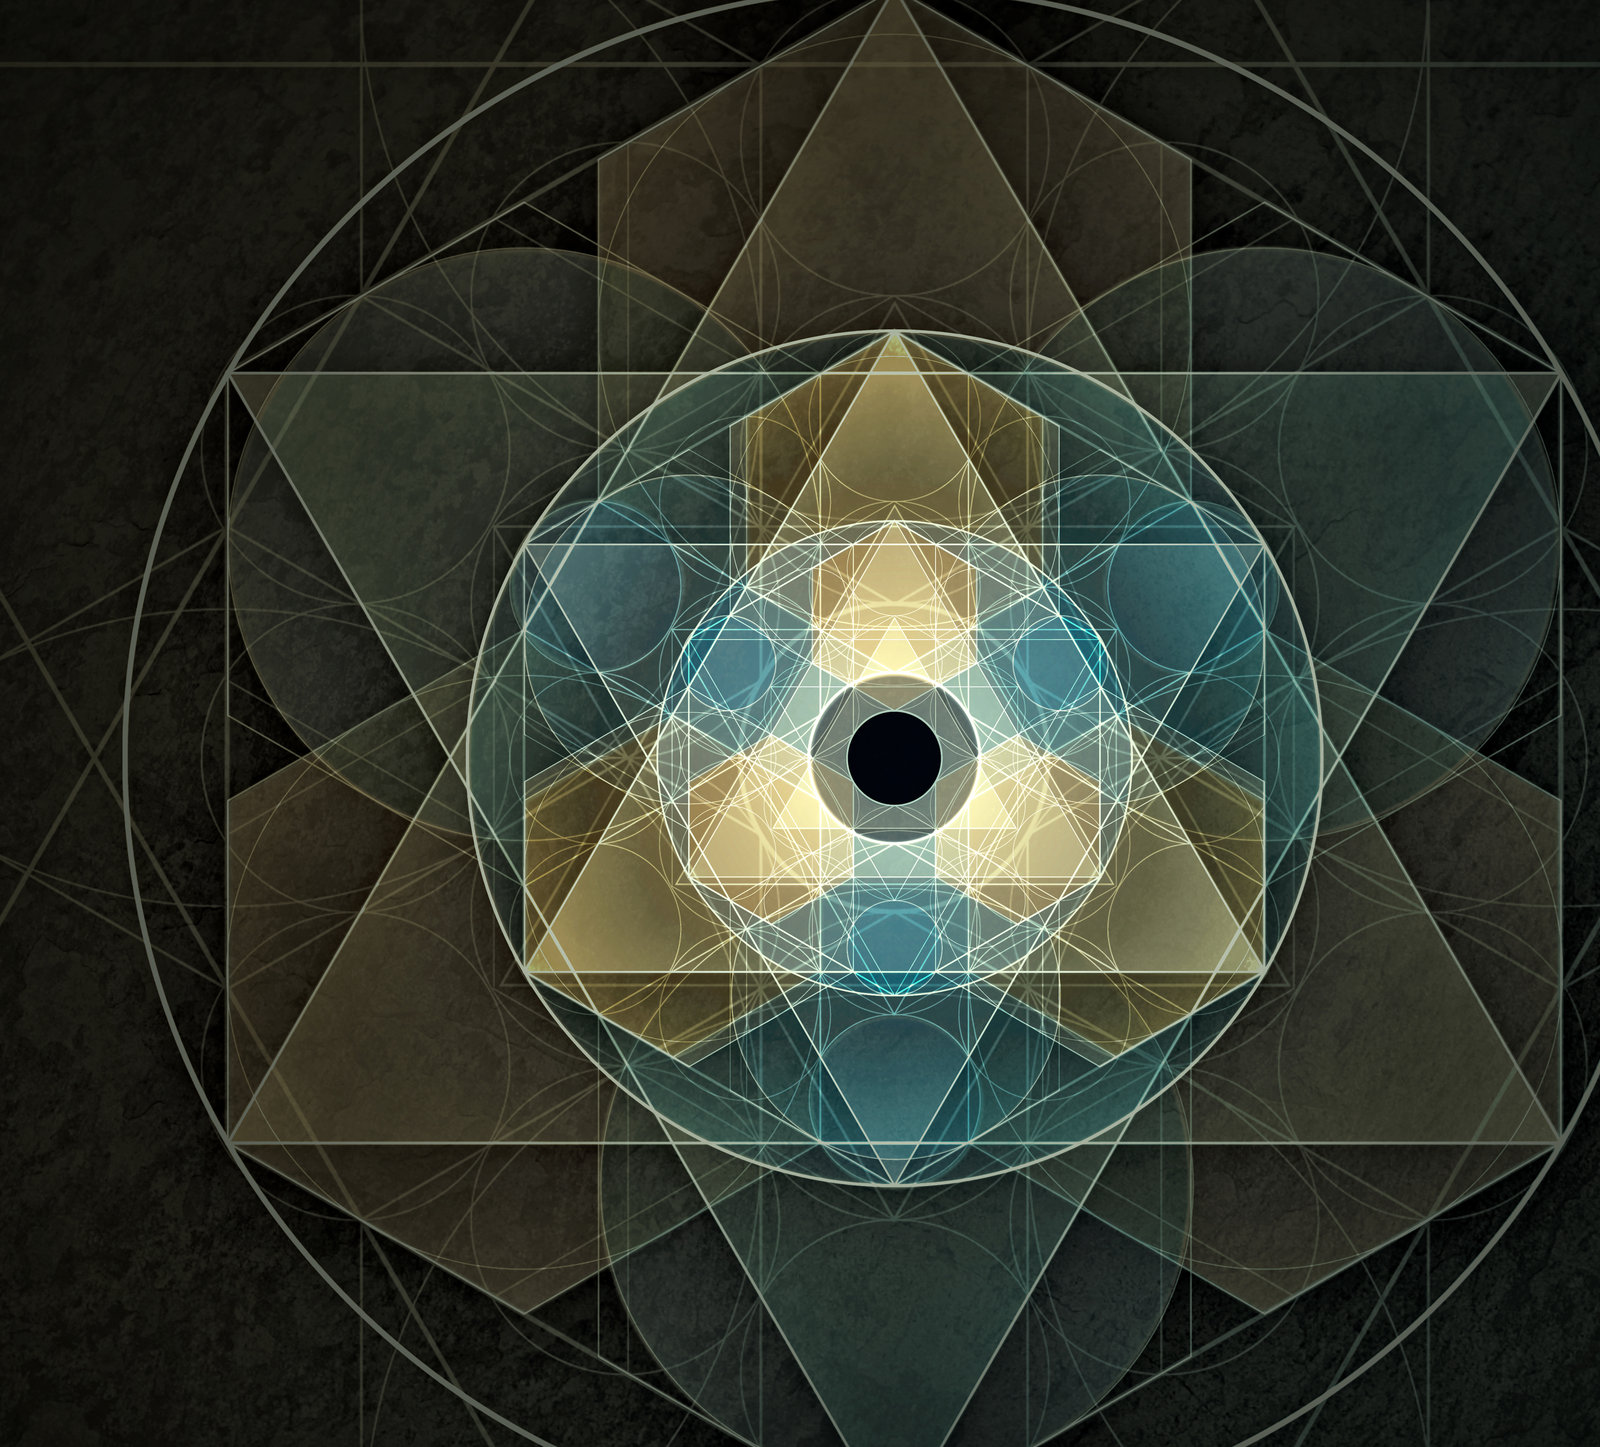 Hd Wallpapers Sacred Geometries Folded Origami Wallpaper 500 X 309 24 1600x1447